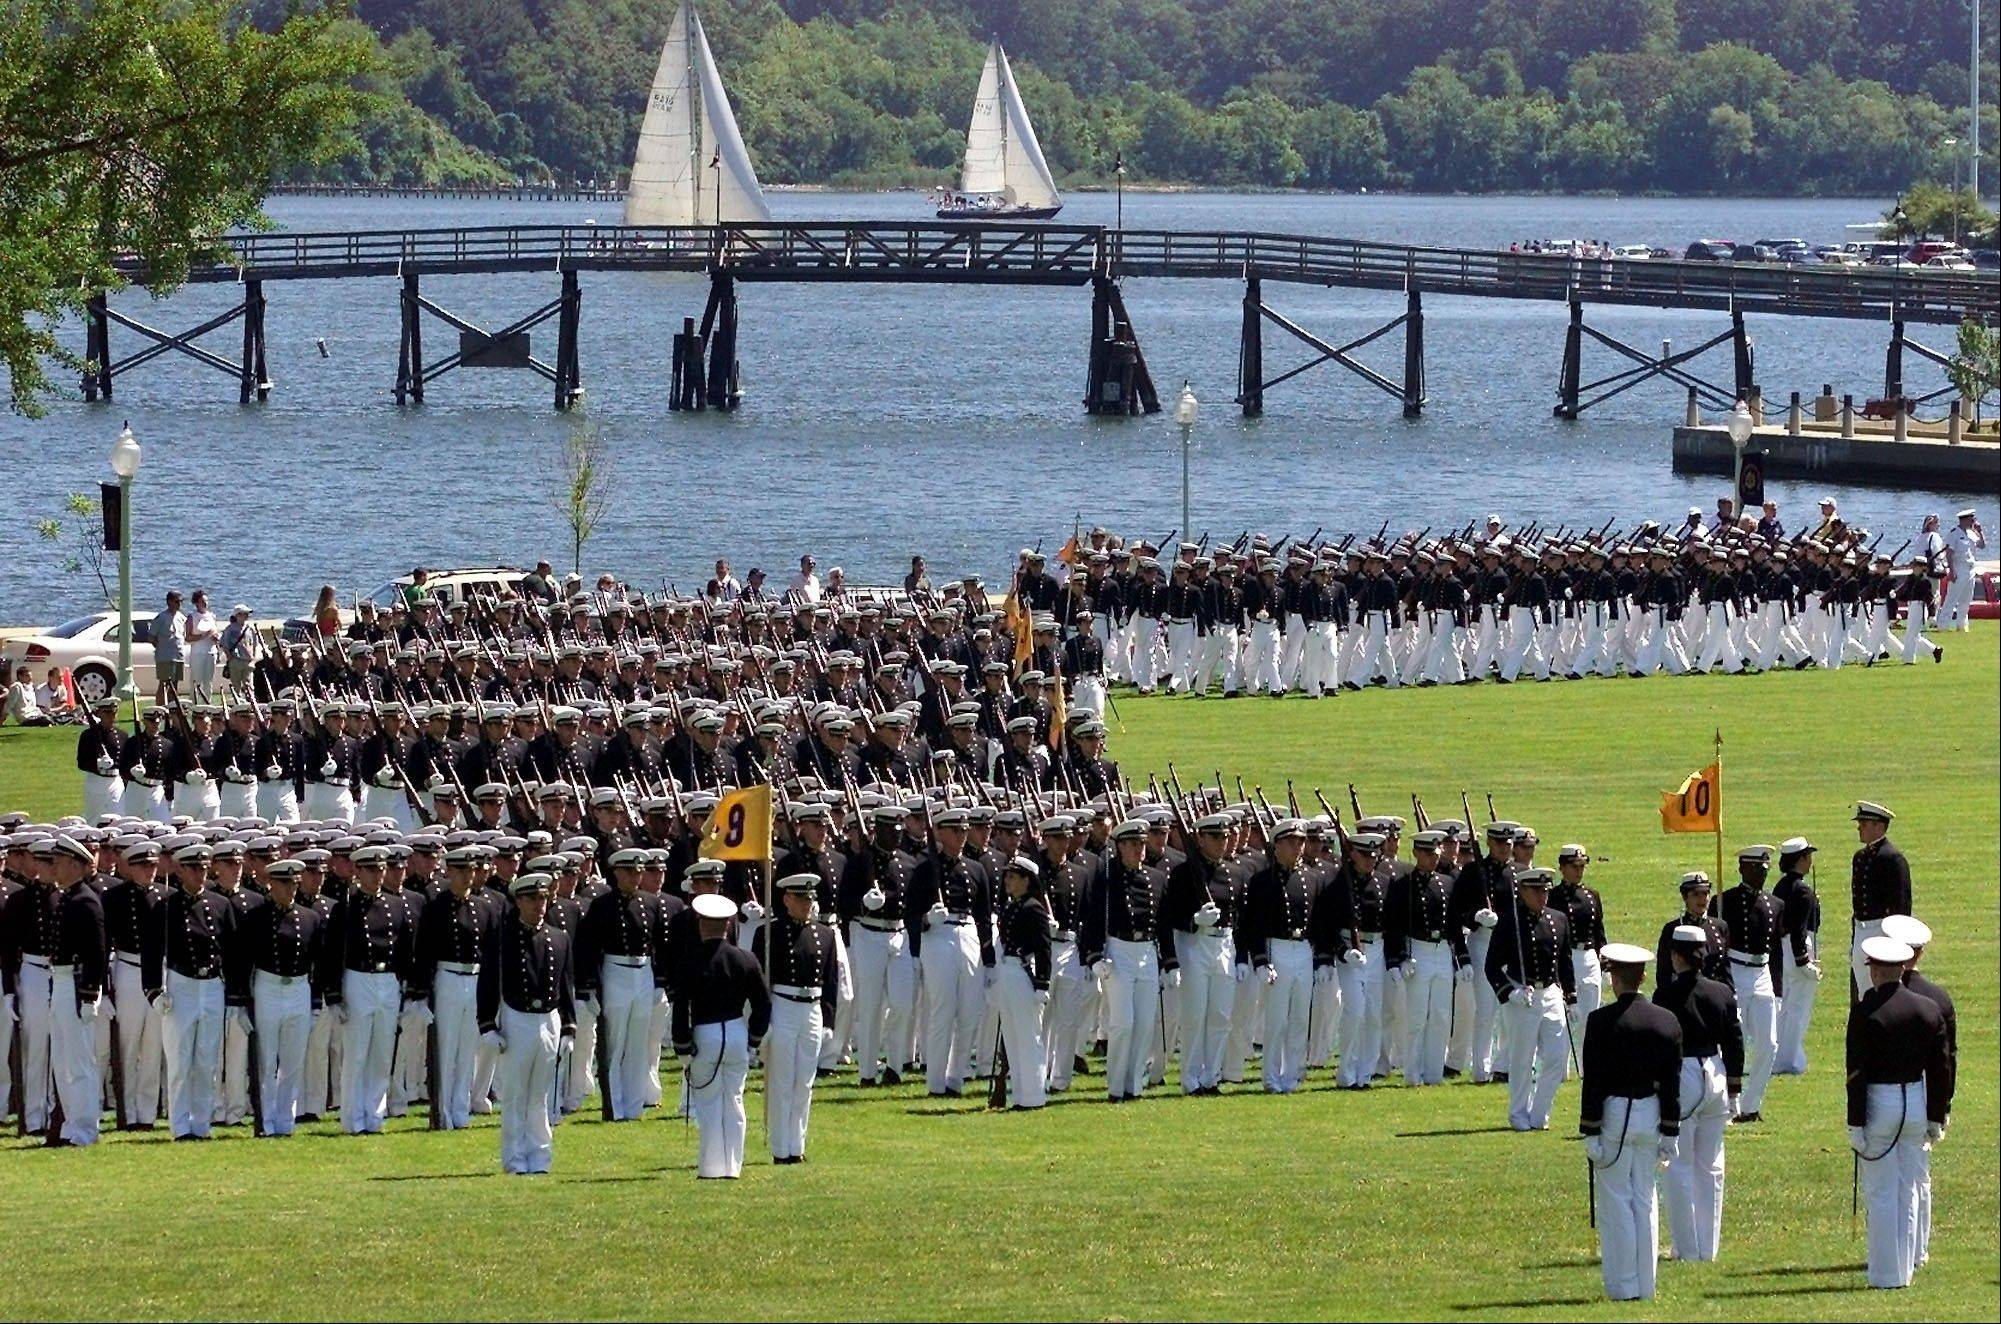 A hearing on allegations of sexual assault provides a sometimes unflattering glimpse into the culture of the Naval Academy.